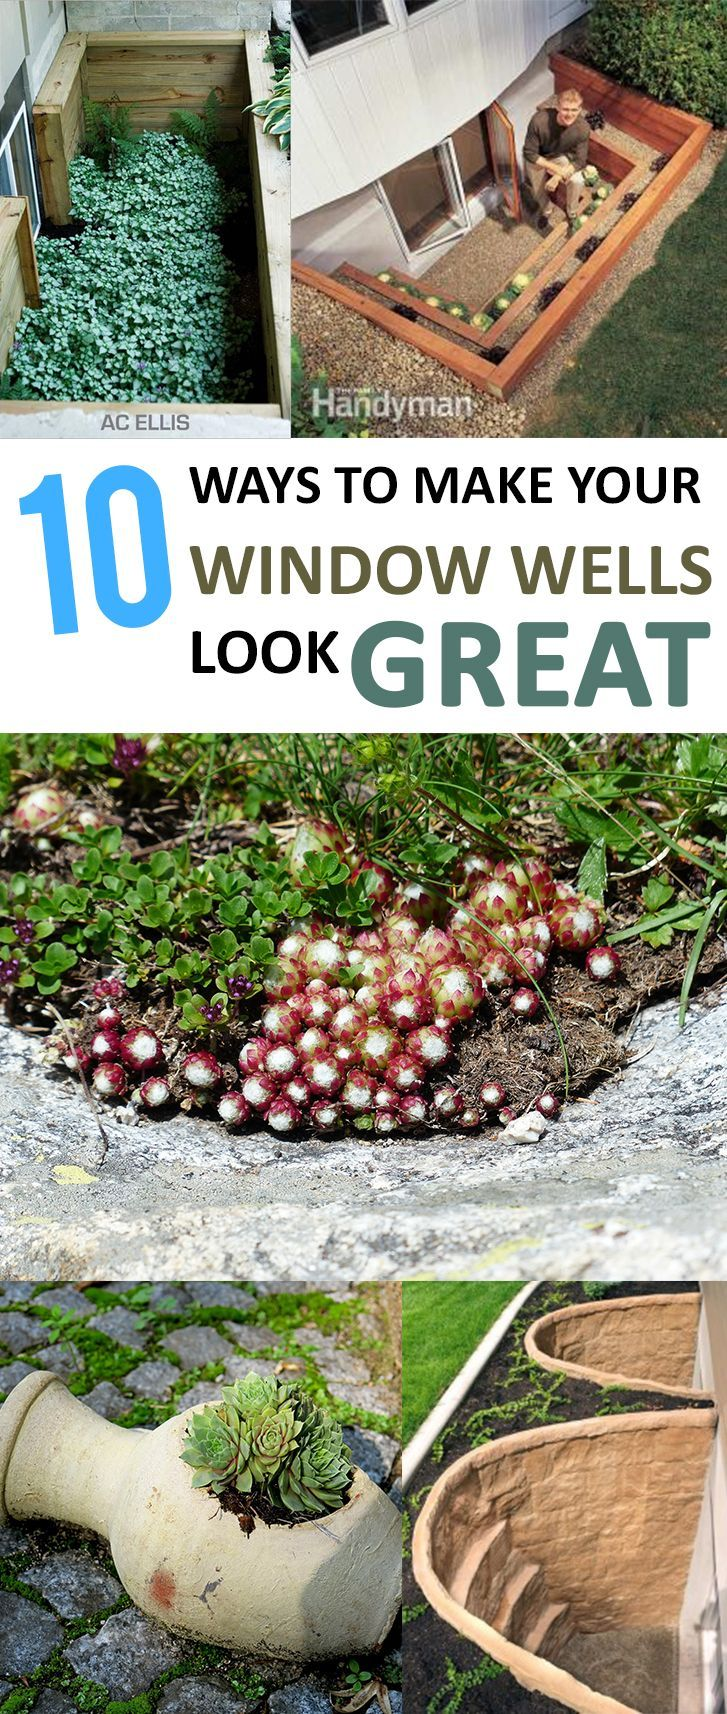 Window well decoration ideas   ways to make your window wells look great   my secret garden